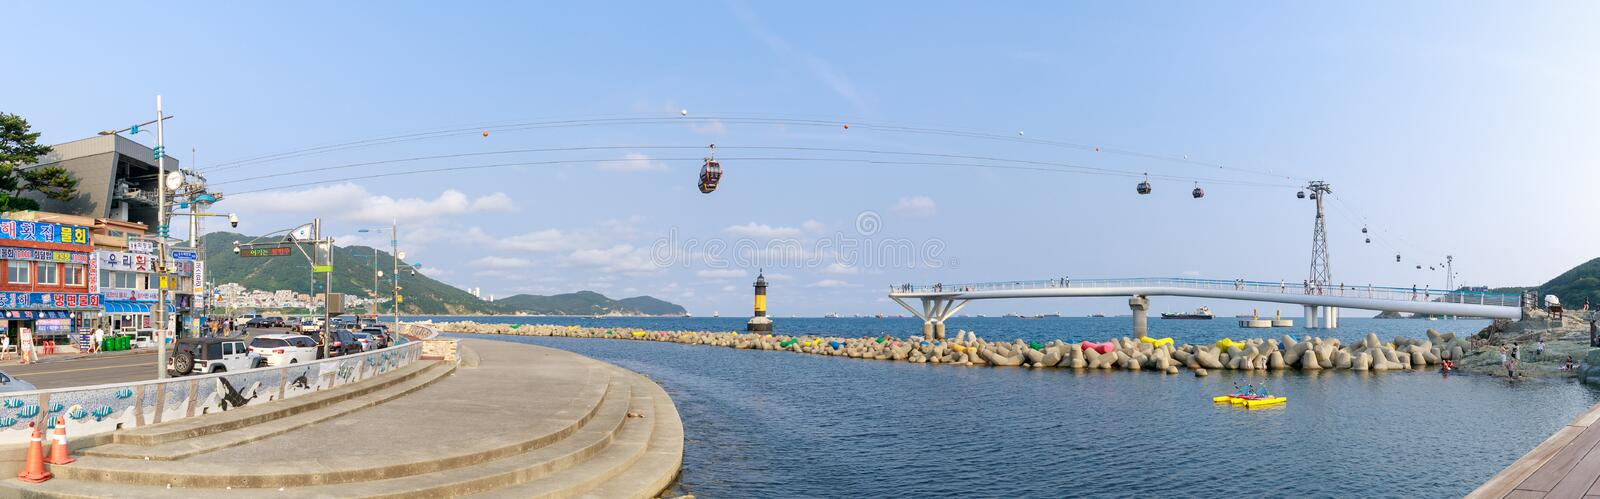 Songdo Beach skyline, Songdo Cloud Trails and Song Marine Cable Car in Busan, South Korea stock photo